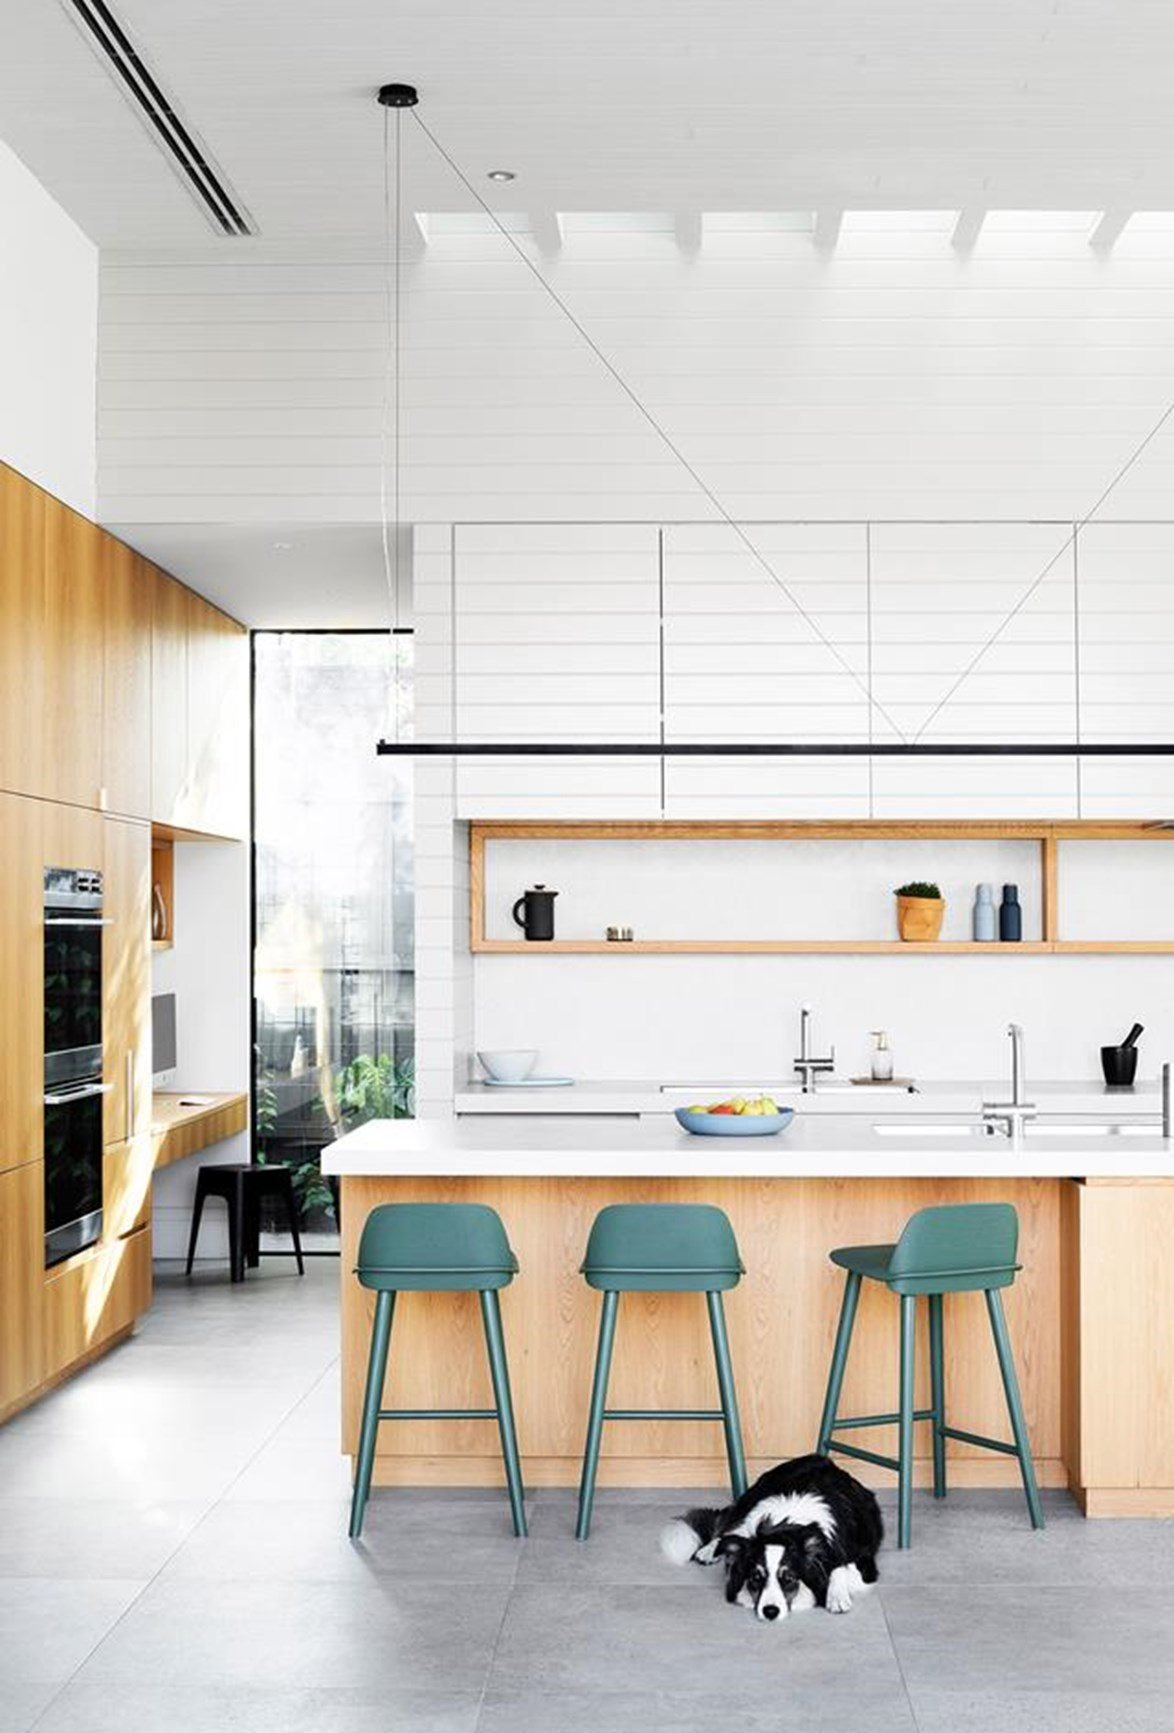 White porcelain surfaces, timber cabinetry and concrete floors are a winning combination in this fuss-free, family kitchen. Muuto 'Nerd' bar stools in a muted sage green add a welcomed pop of colour.